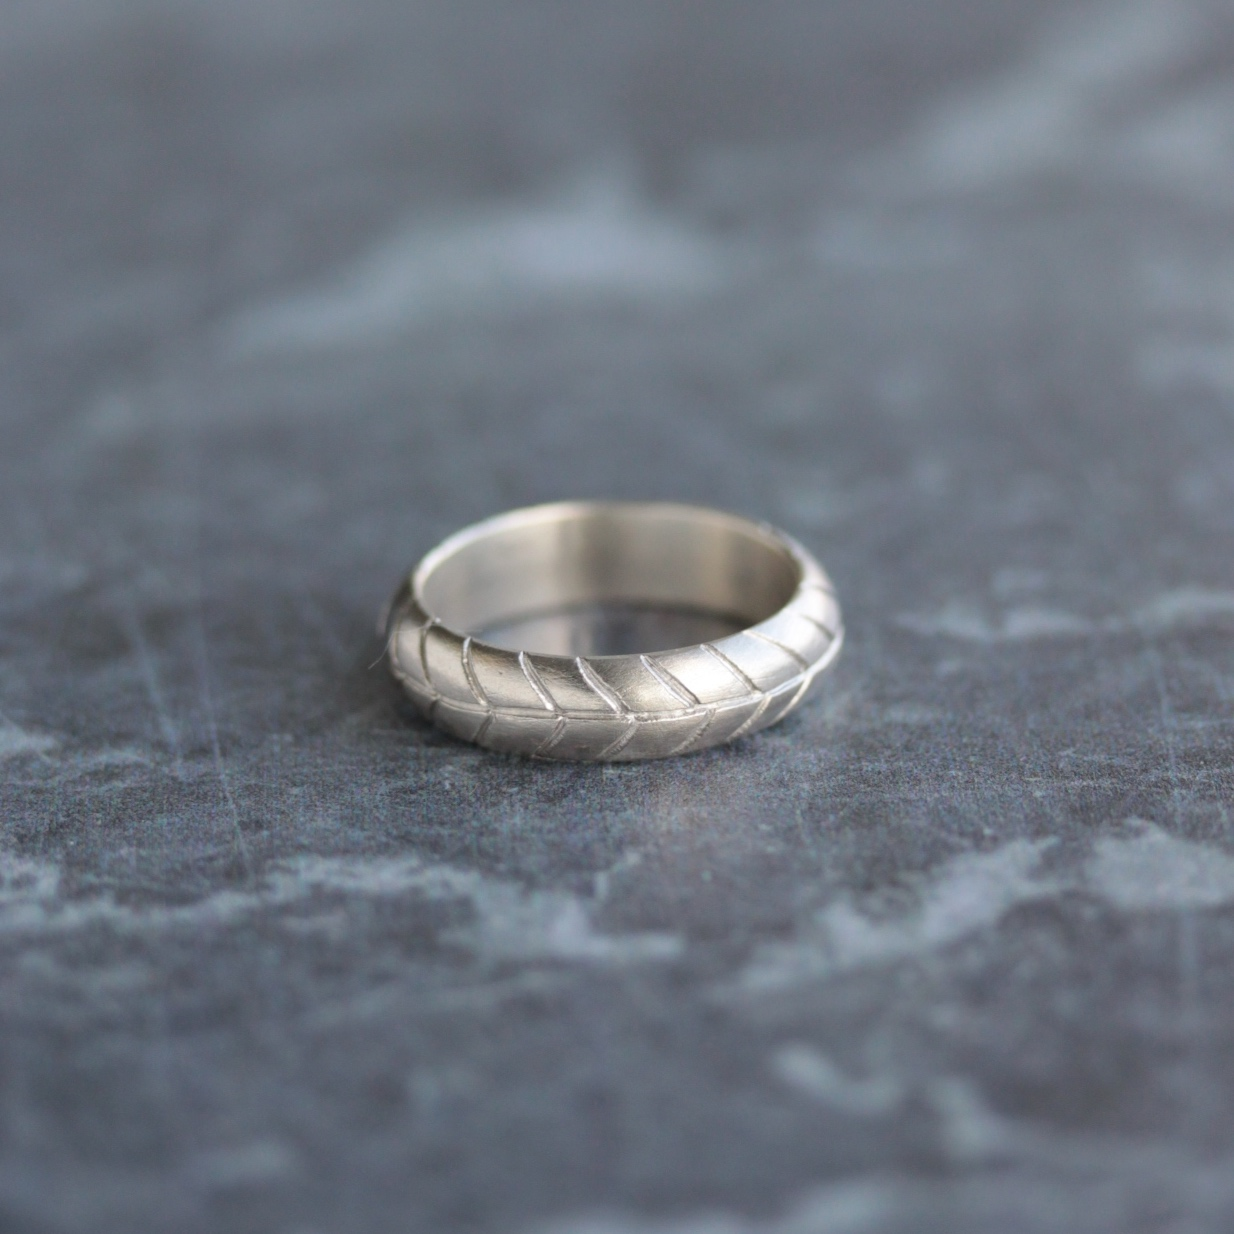 A wedding band created for our client inspired by the wheat motif that also features on his wife's wedding and enagagement ring.